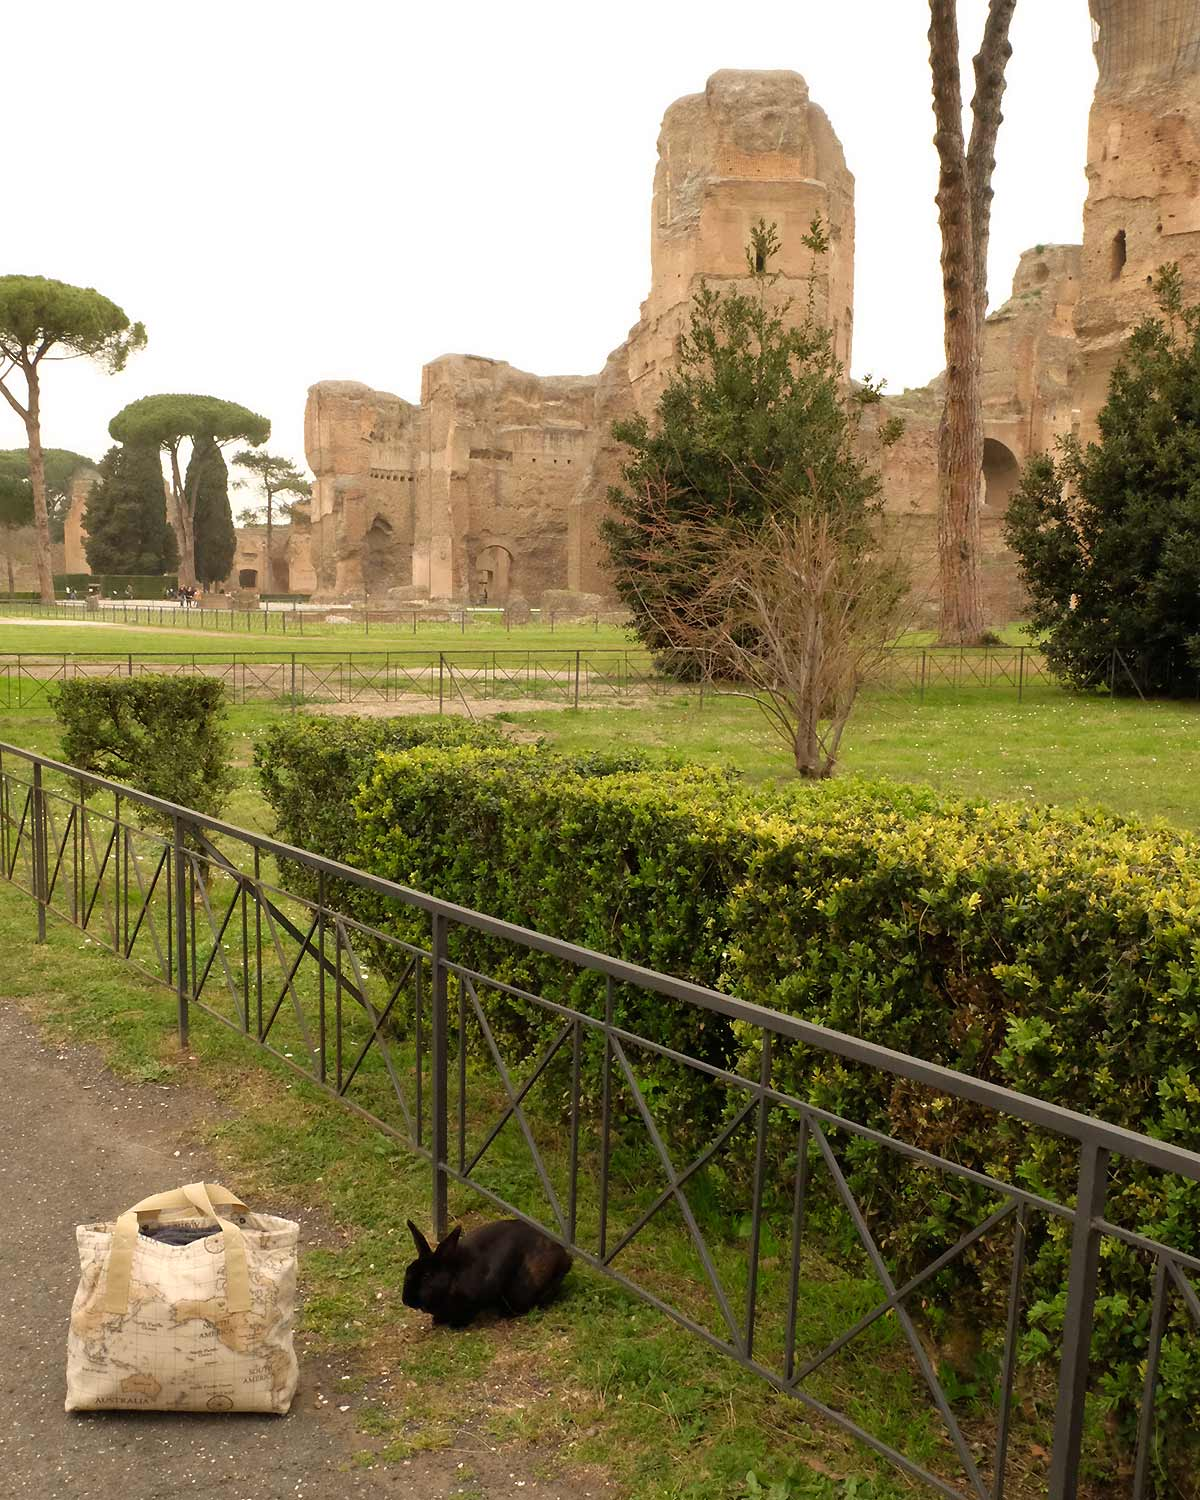 otziotzi-artisanat-textile-sac-cabas-made in france dans les thermes de Caracalla